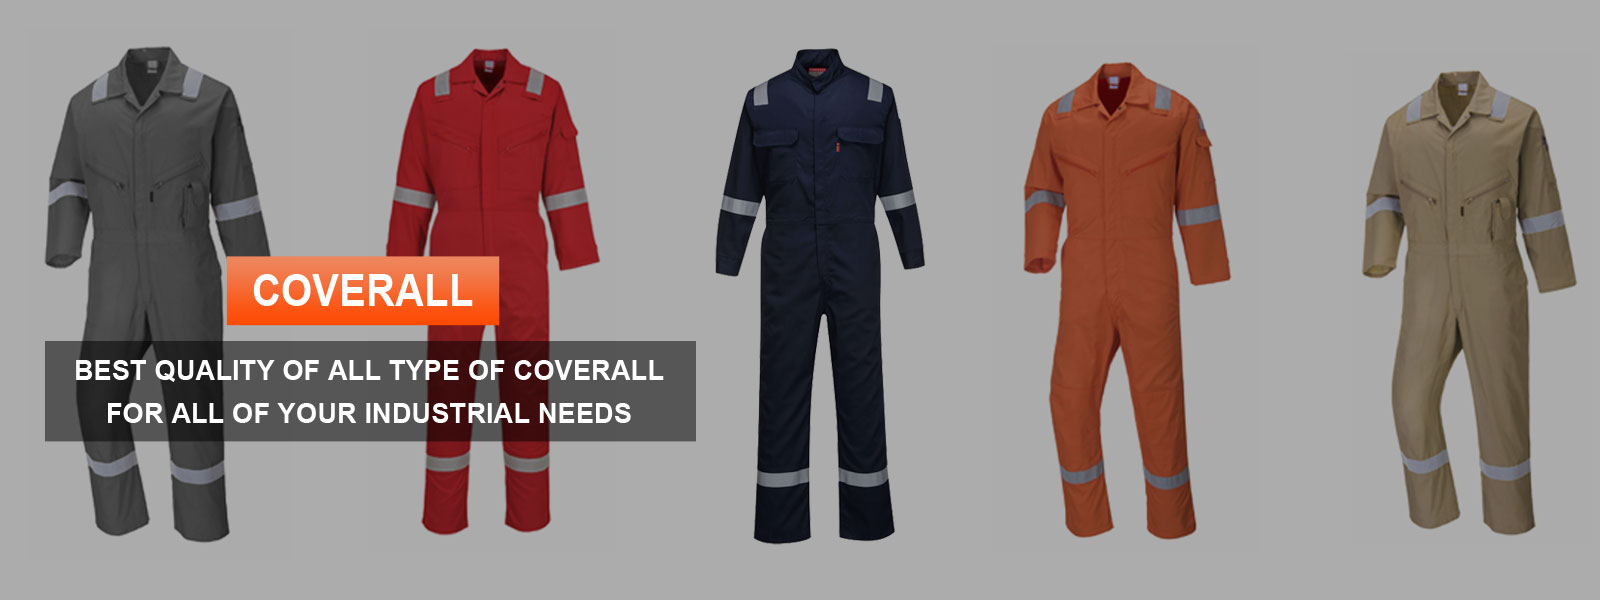 Coverall Manufacturers in Grenada